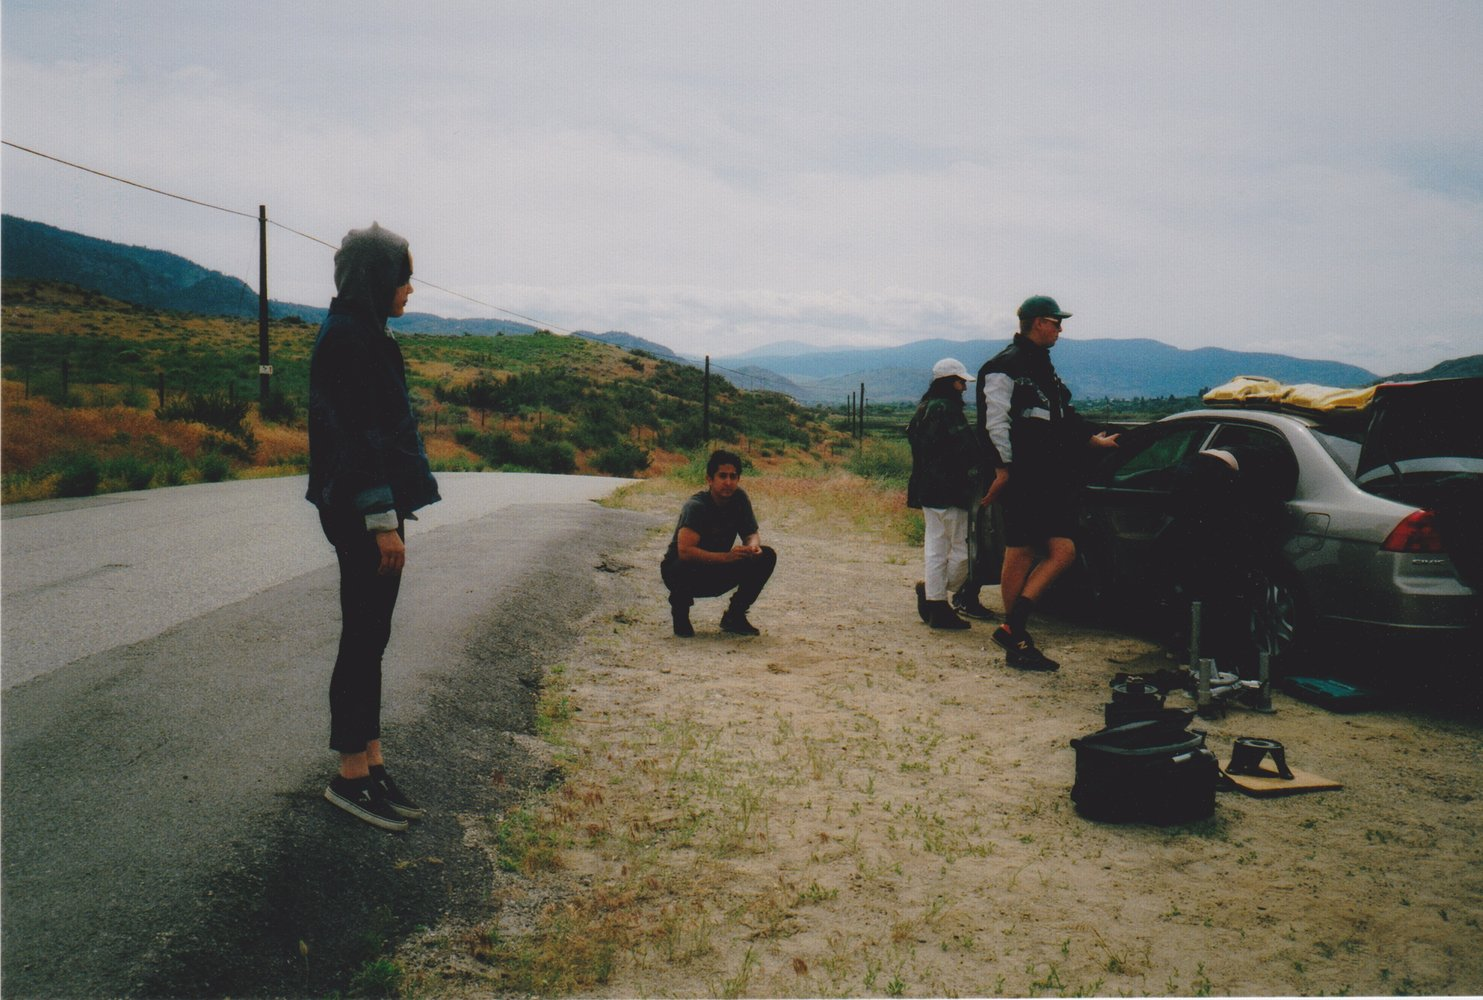 The crew on set of Kingspin